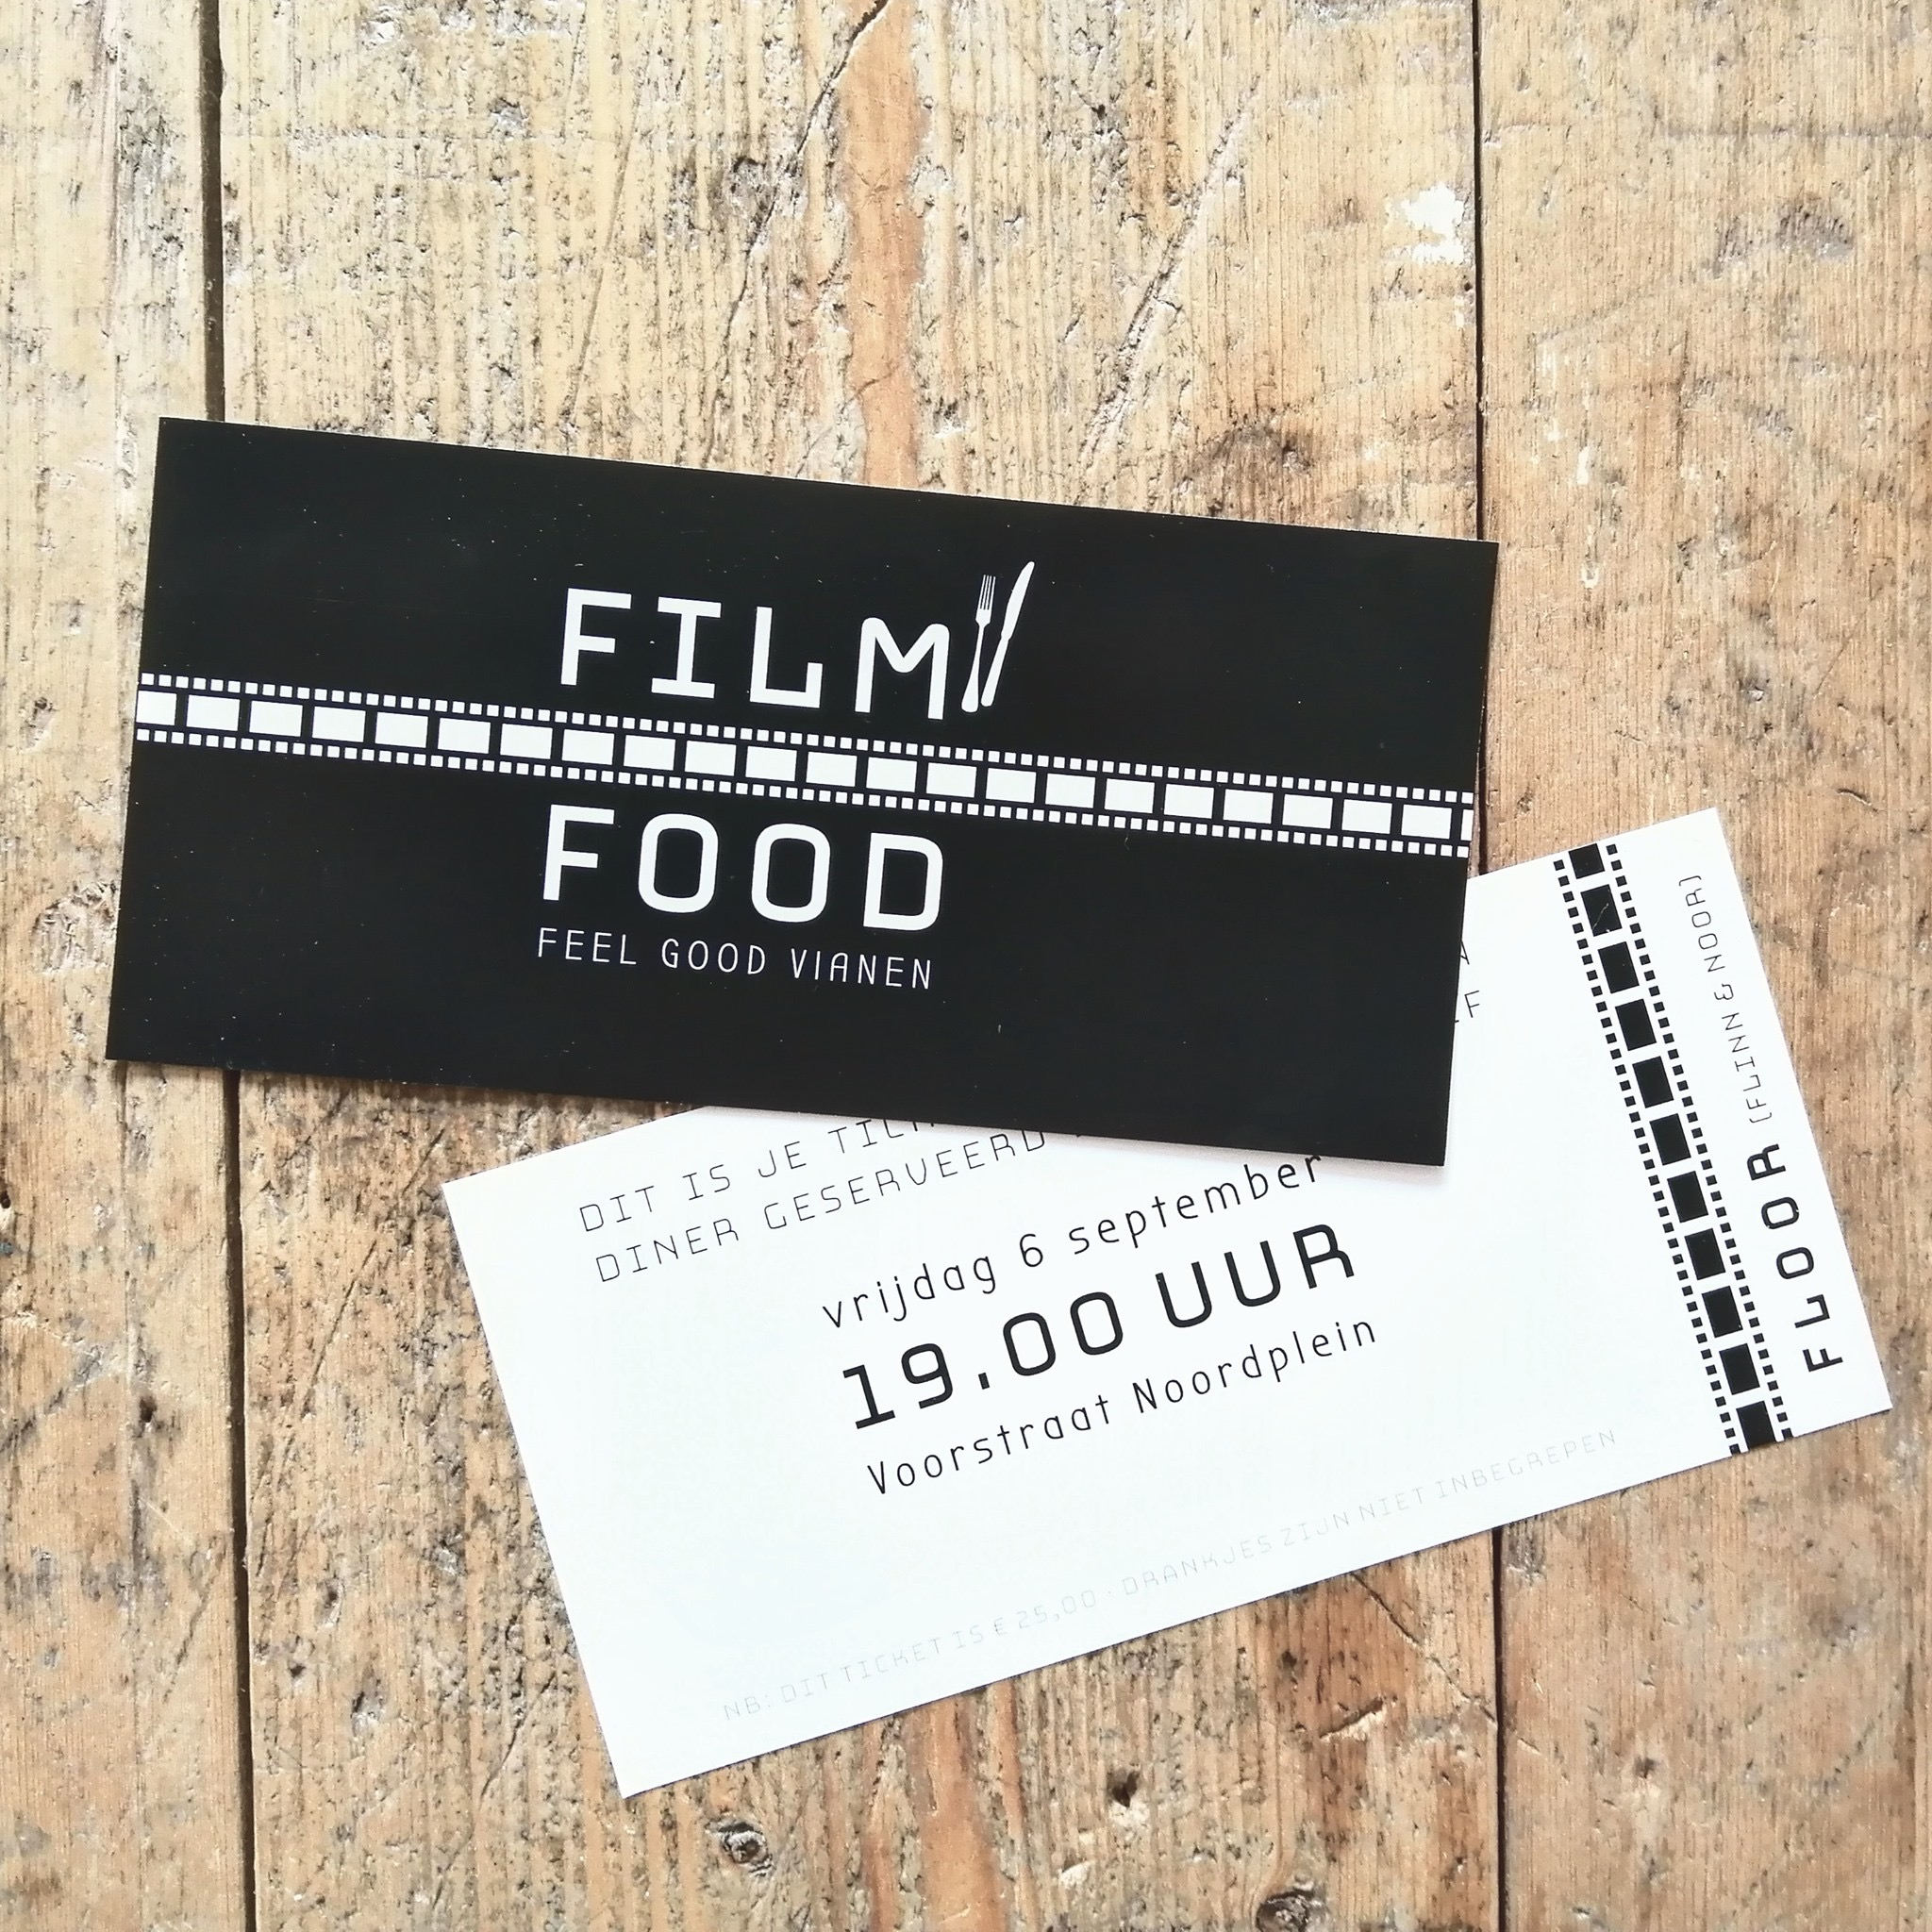 Film Food Vianen